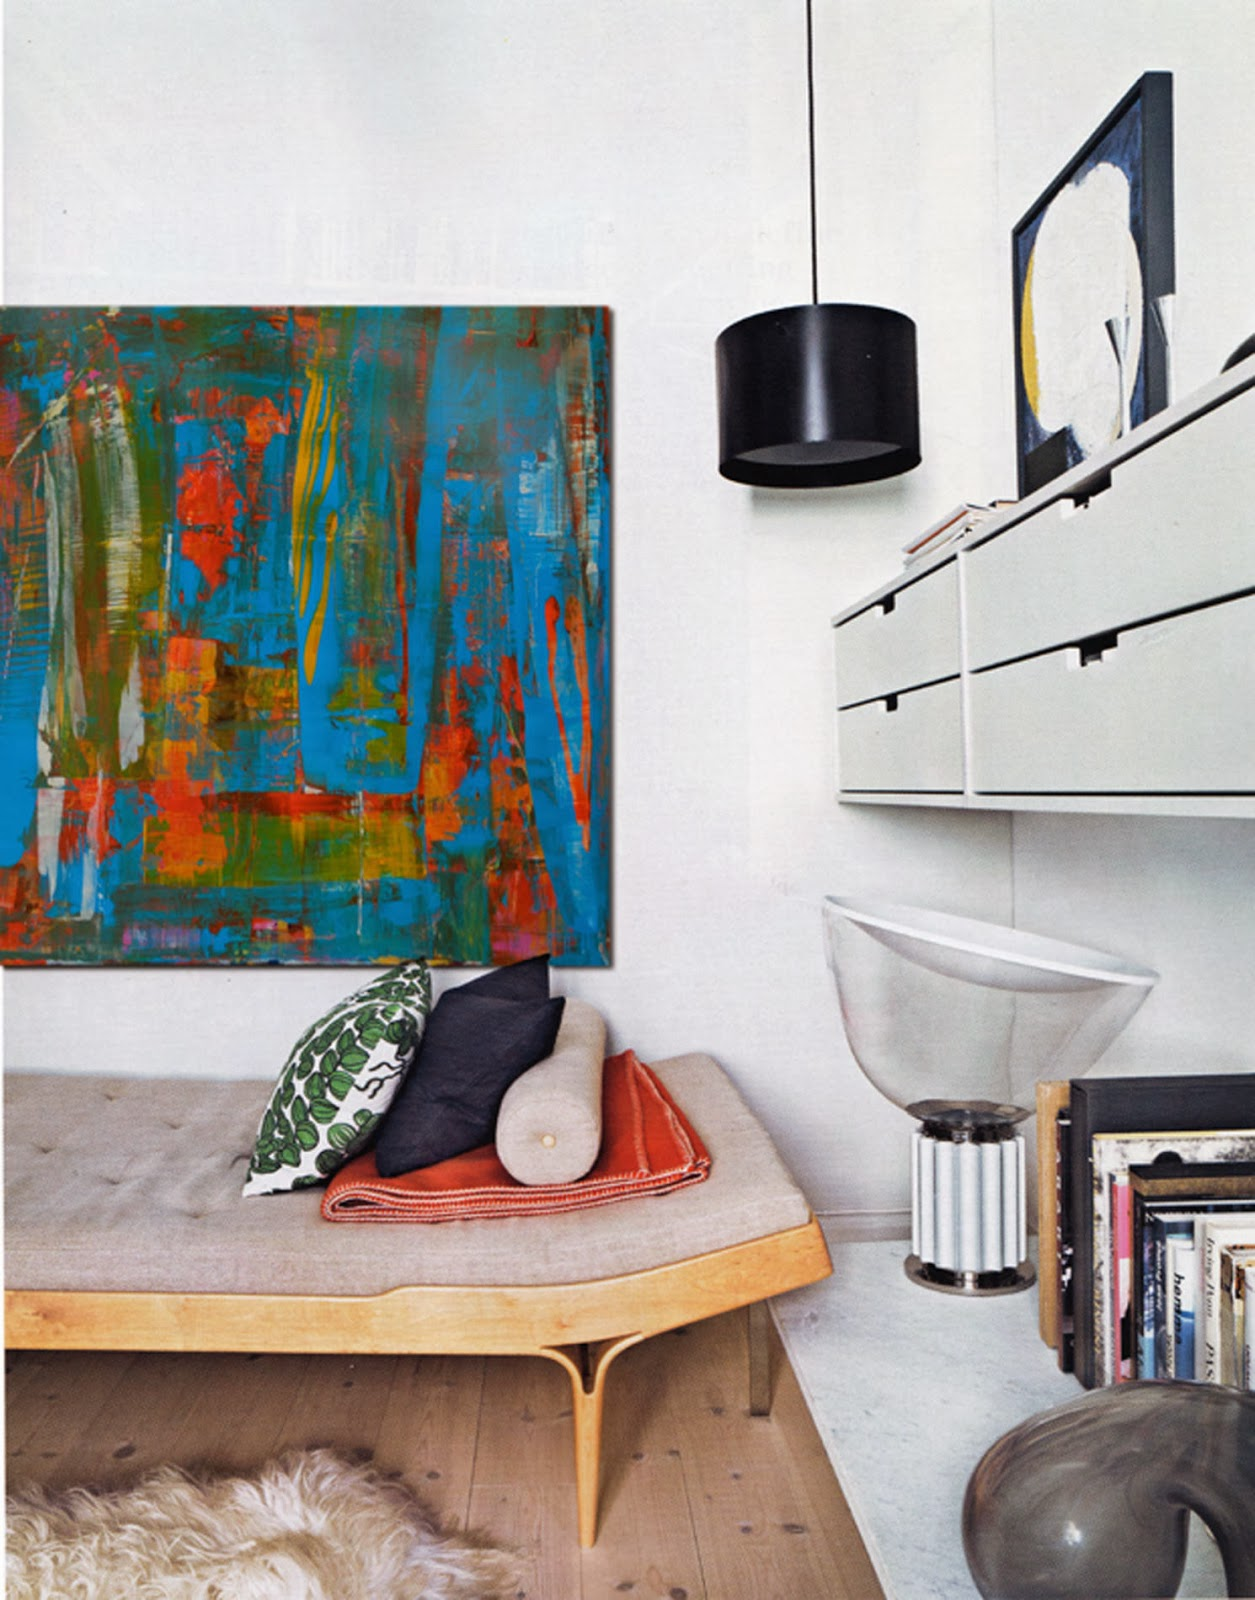 Victor Raul Garcias Circo Abstract Modern Painting By The Bed